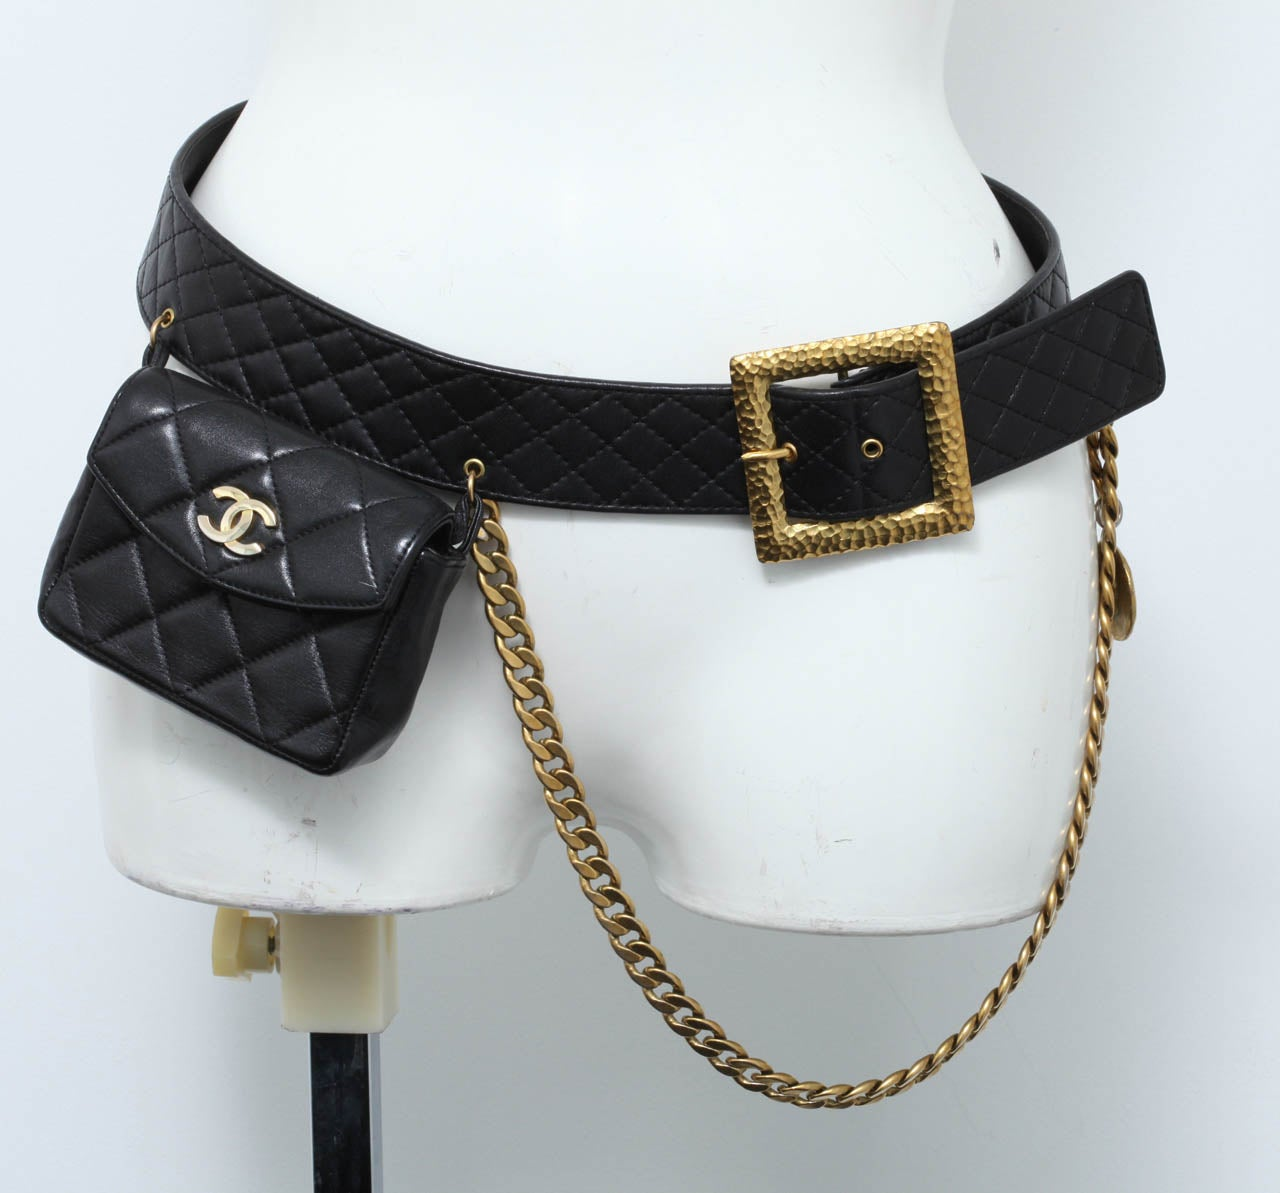 Vintage Chanel Belt with Pack and Gold Chain 2